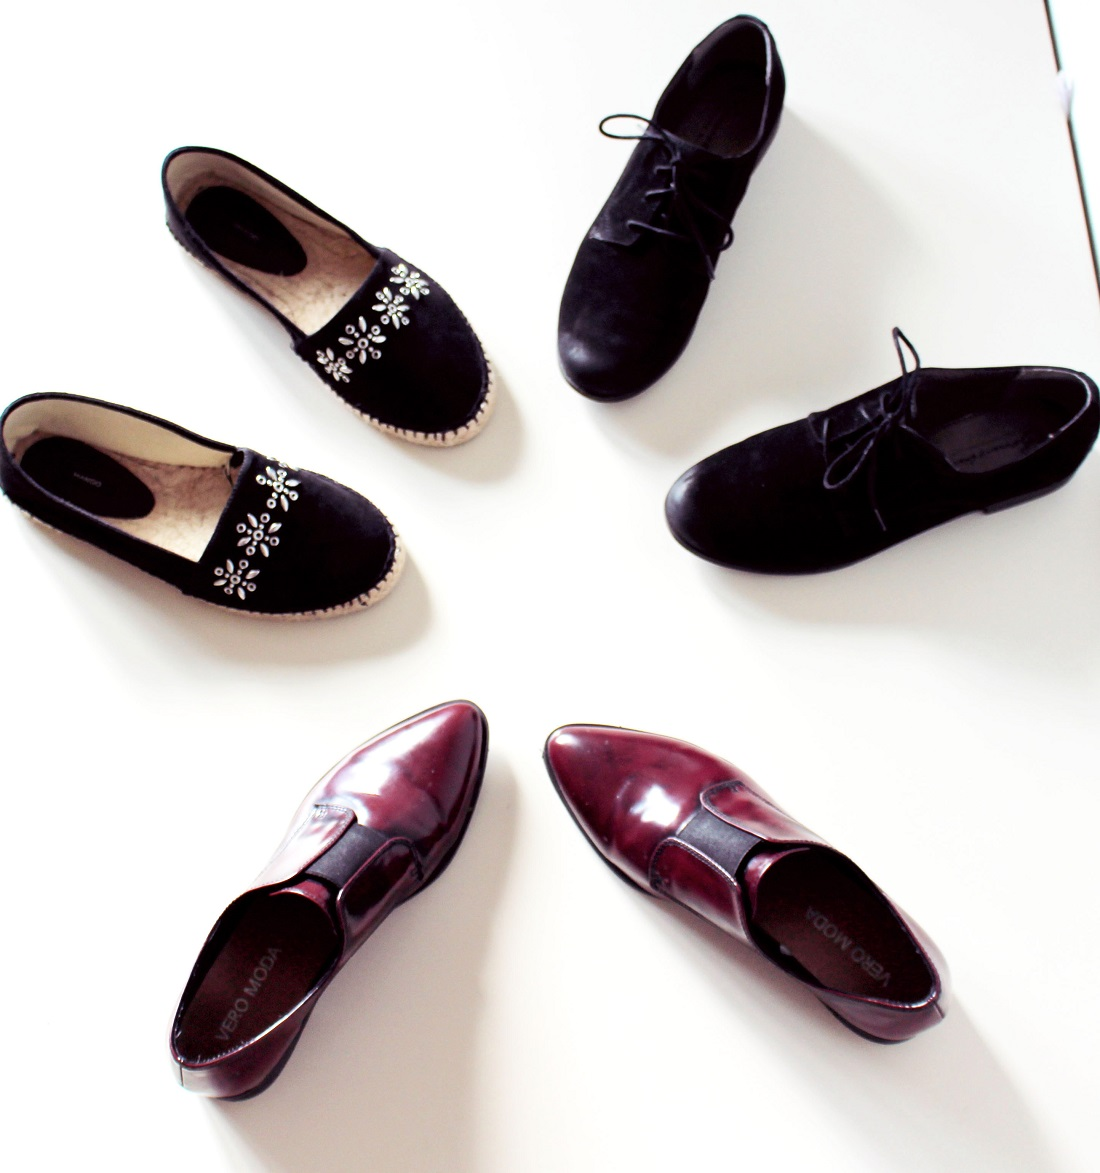 my shoes -